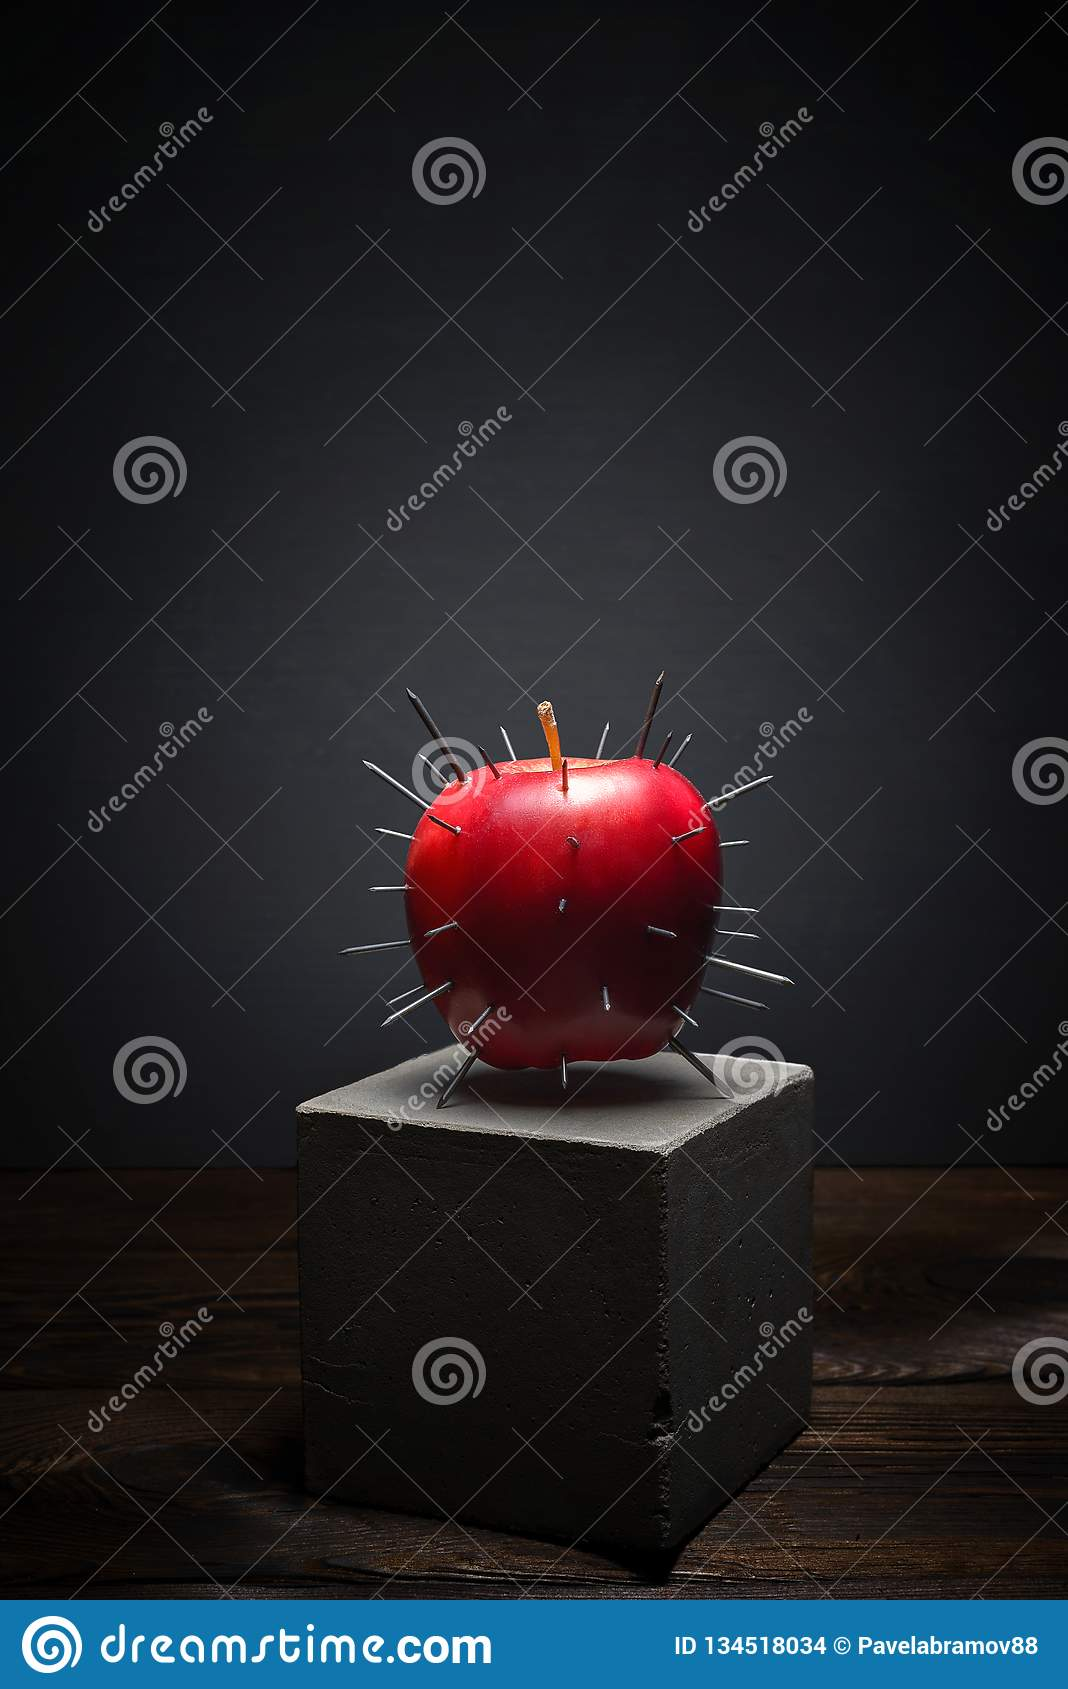 Fresh fruit on dark background on concrete stand. Juicy red Apple with sharp thorns